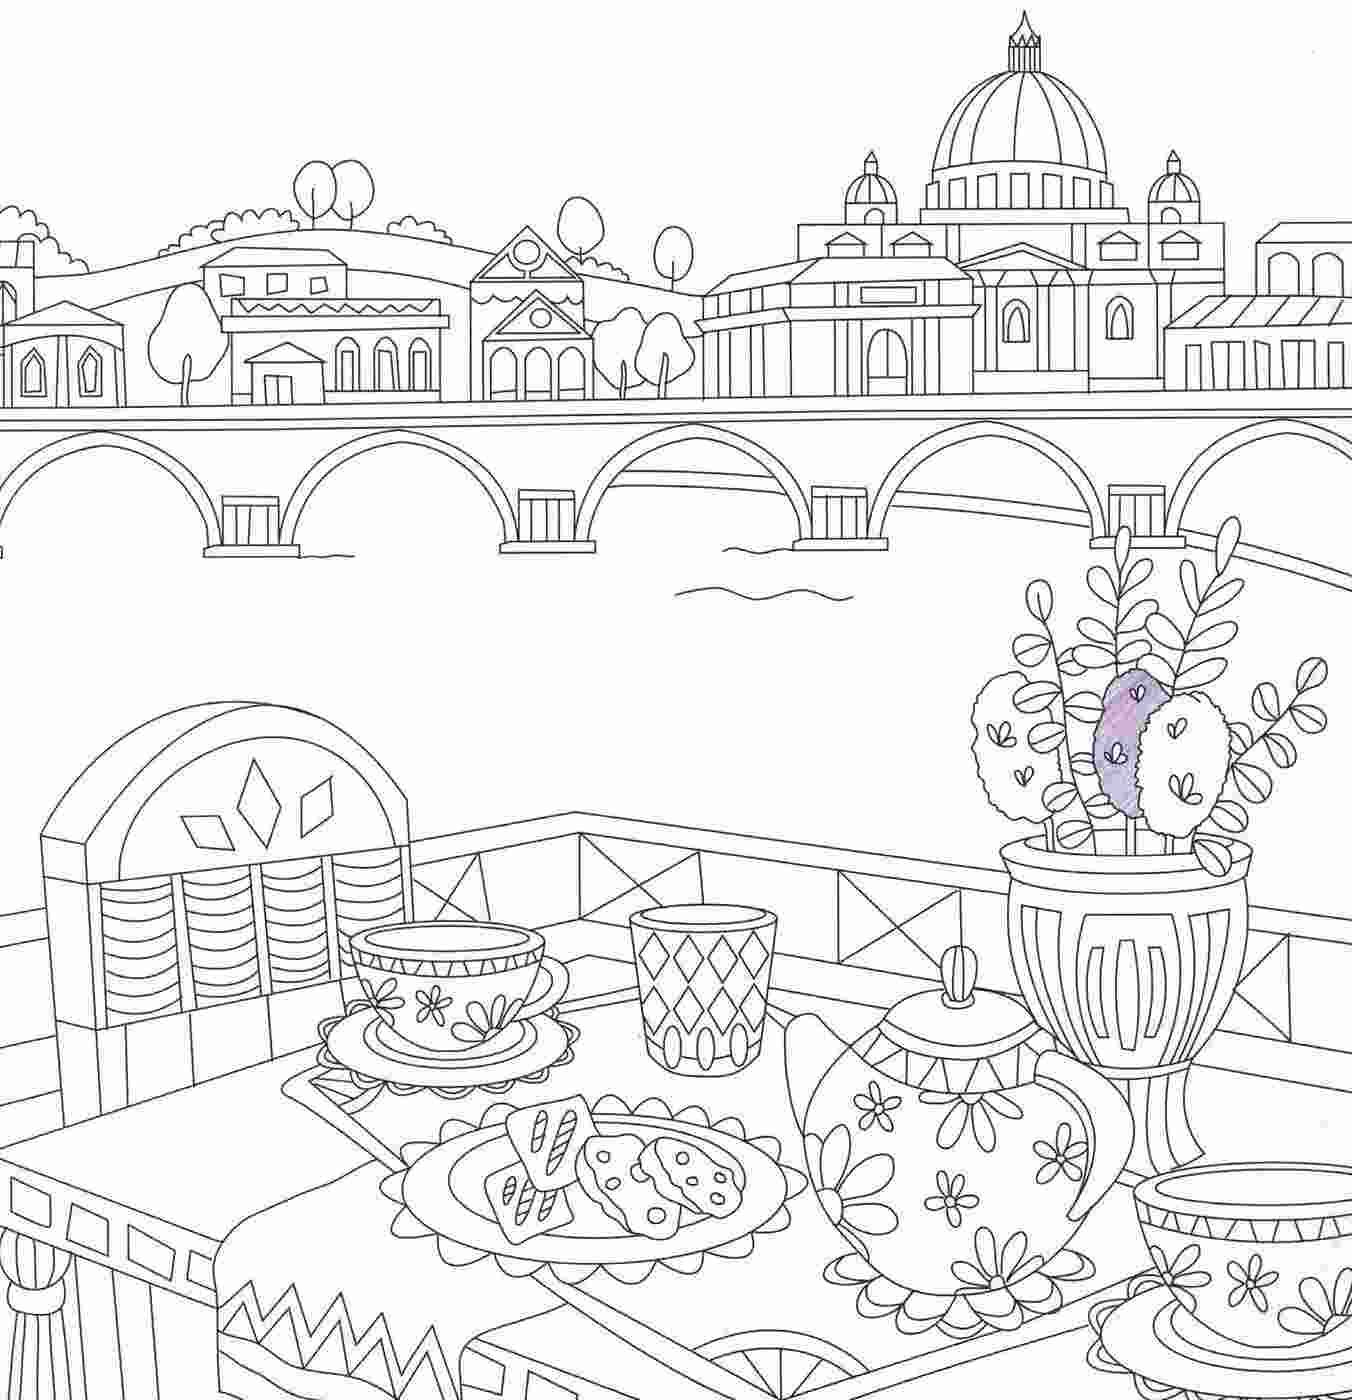 Free Coloring Pages Travel Coloring Books Coloring Pages Free Coloring Pages